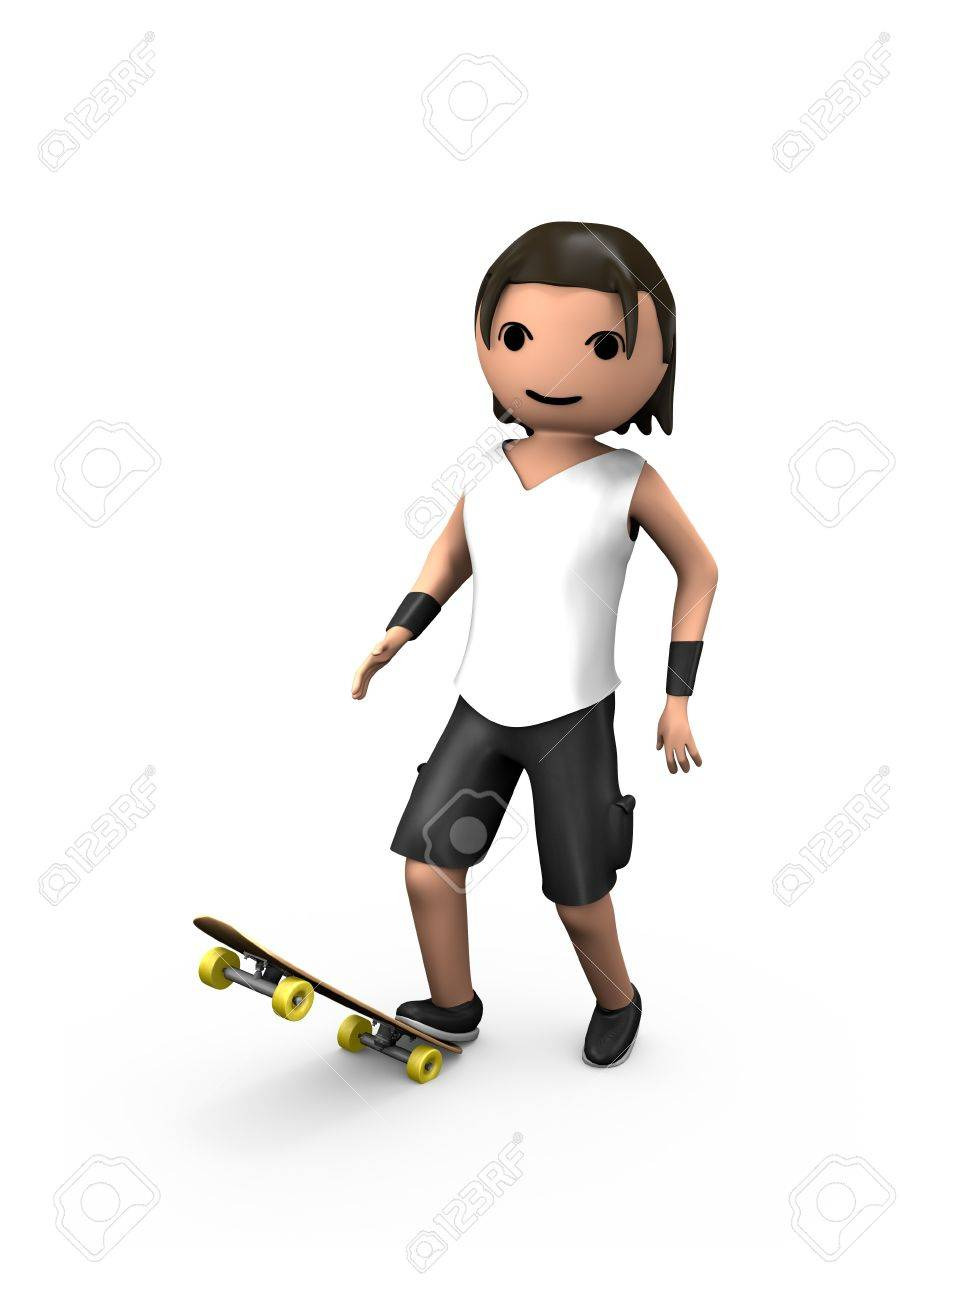 Young White 3D Guy Standing on Skateboard Looking at Viewer - 7841837